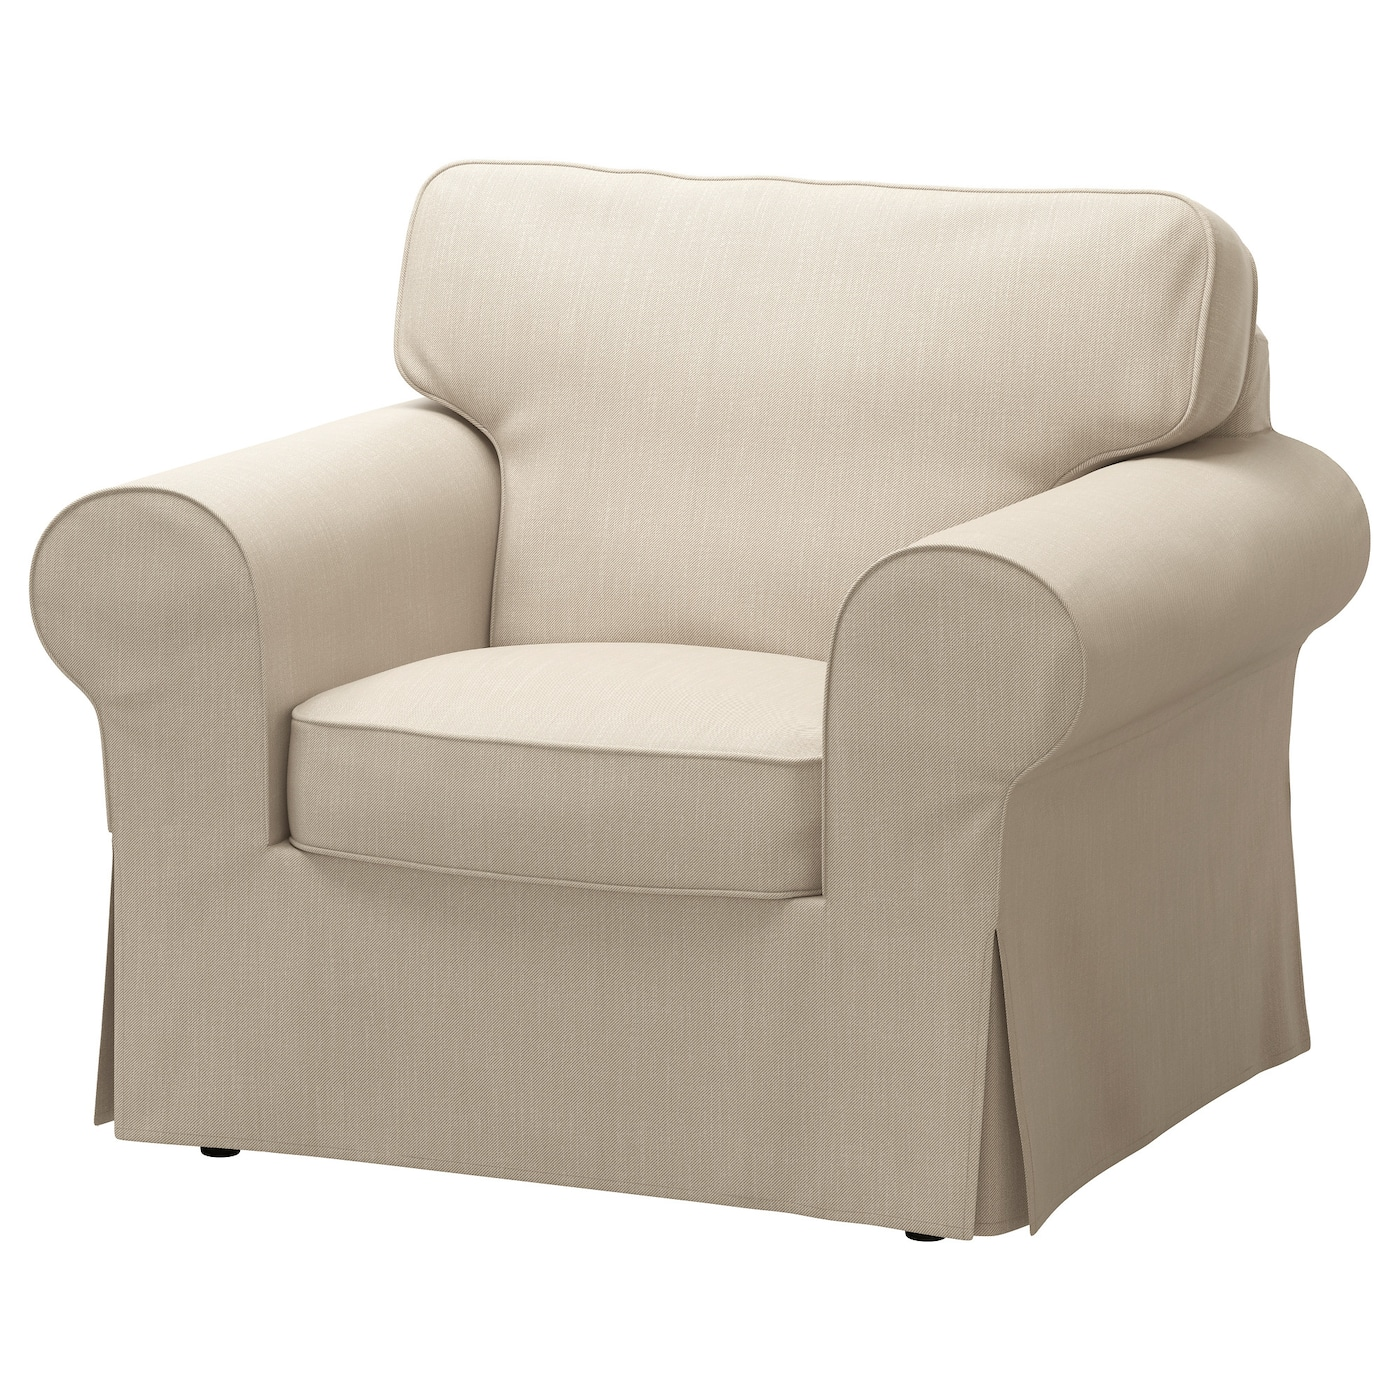 Ektorp armchair nordvalla dark beige ikea for Armchair furniture